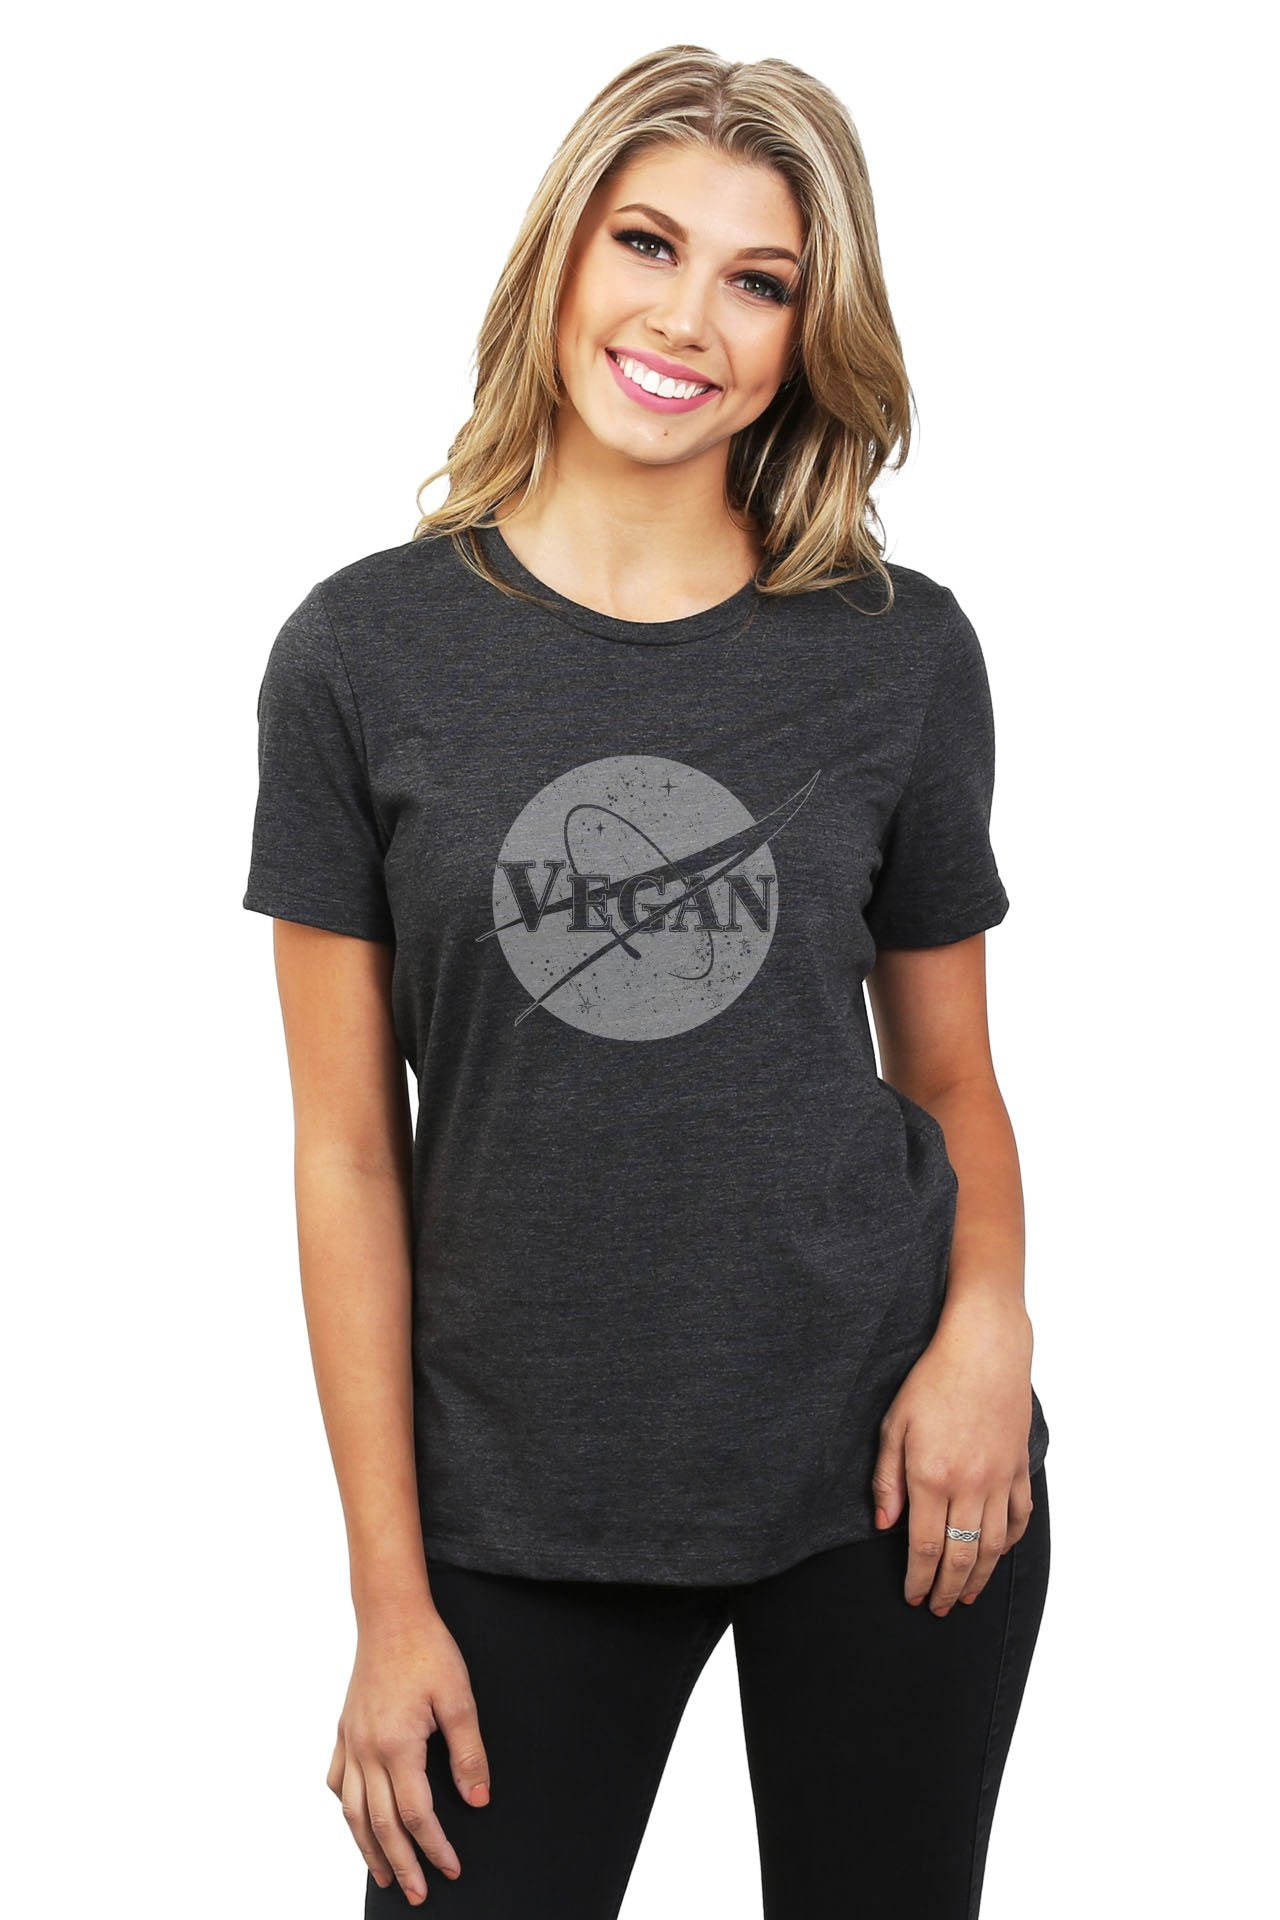 Vegan Out Of This World Women's Relaxed Crewneck T-Shirt Top Tee Charcoal Grey